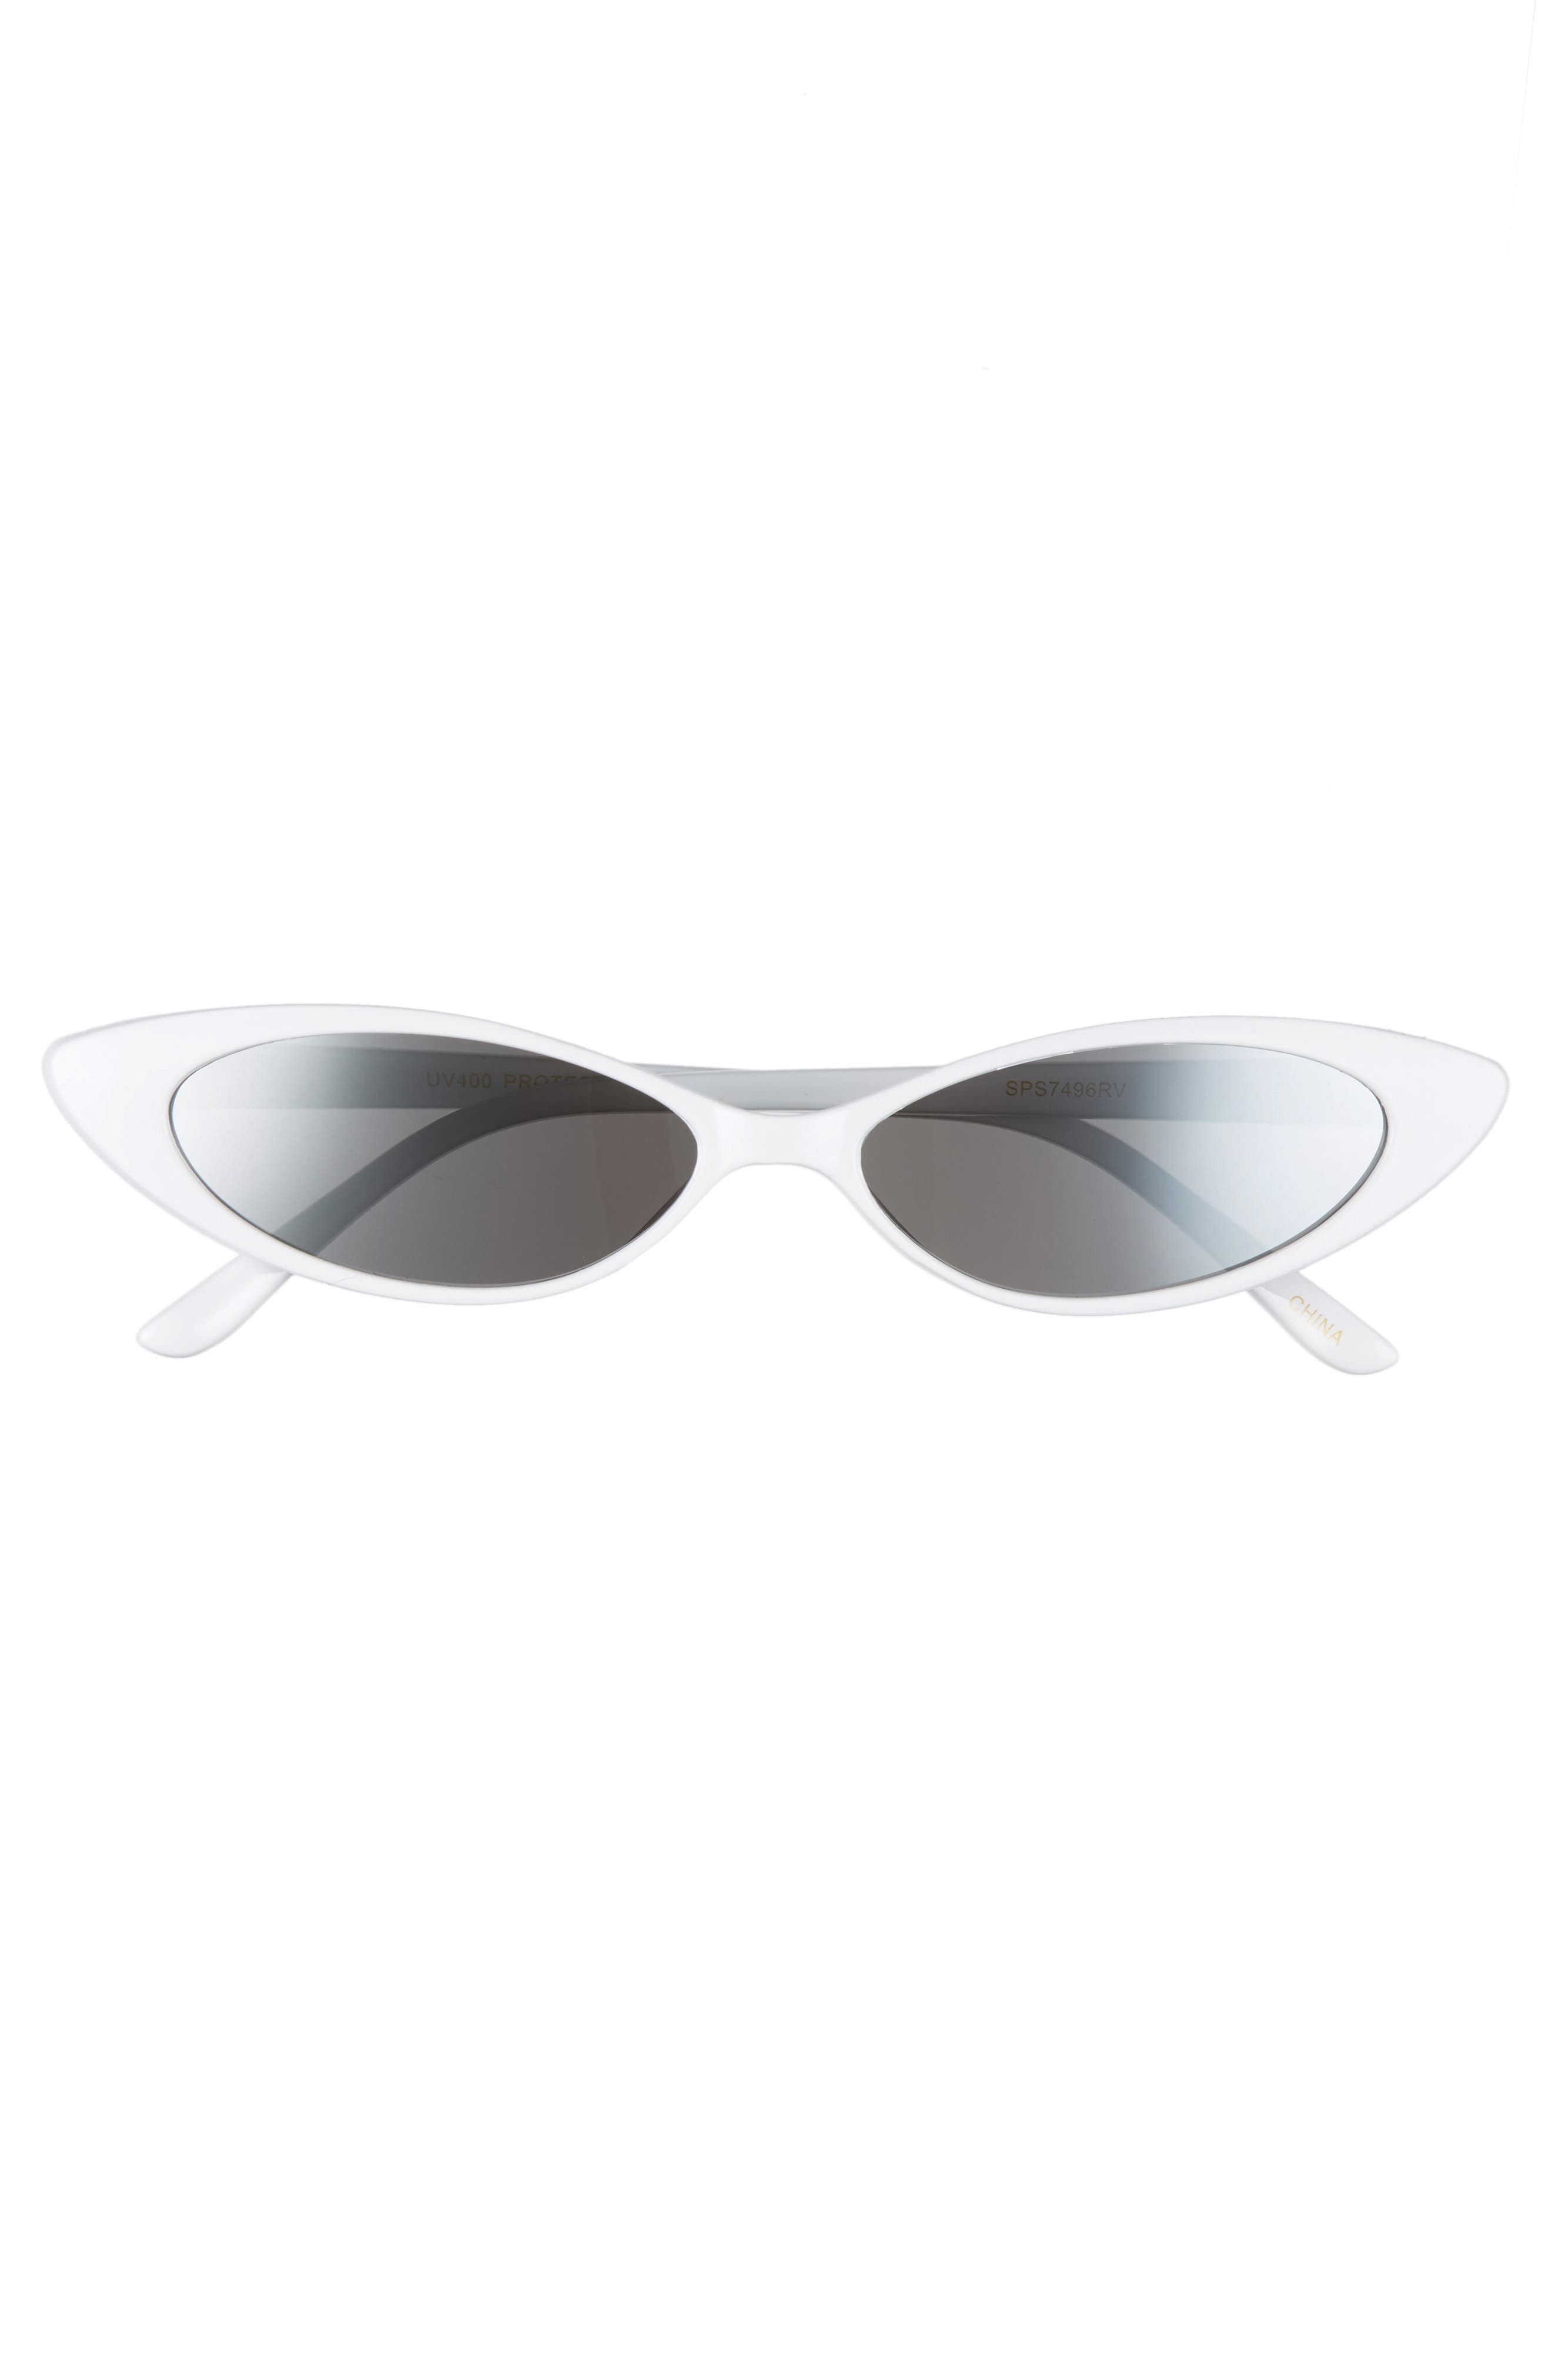 Oval Sunglasses,                             Alternate thumbnail 3, color,                             WHITE/ SILVER